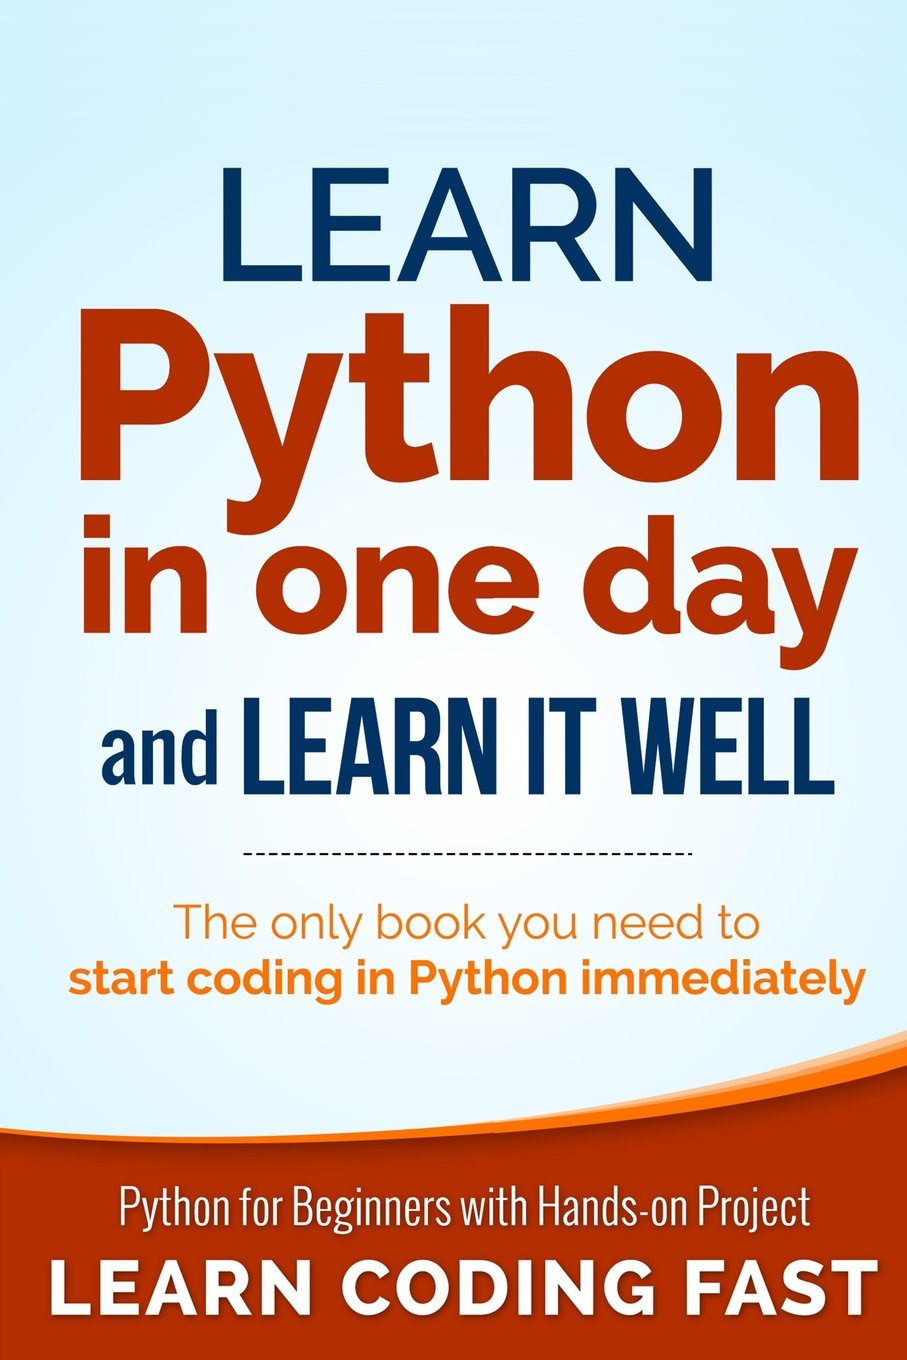 Learn Python in One Day and Learn It Well ISBN-13 9781506094380